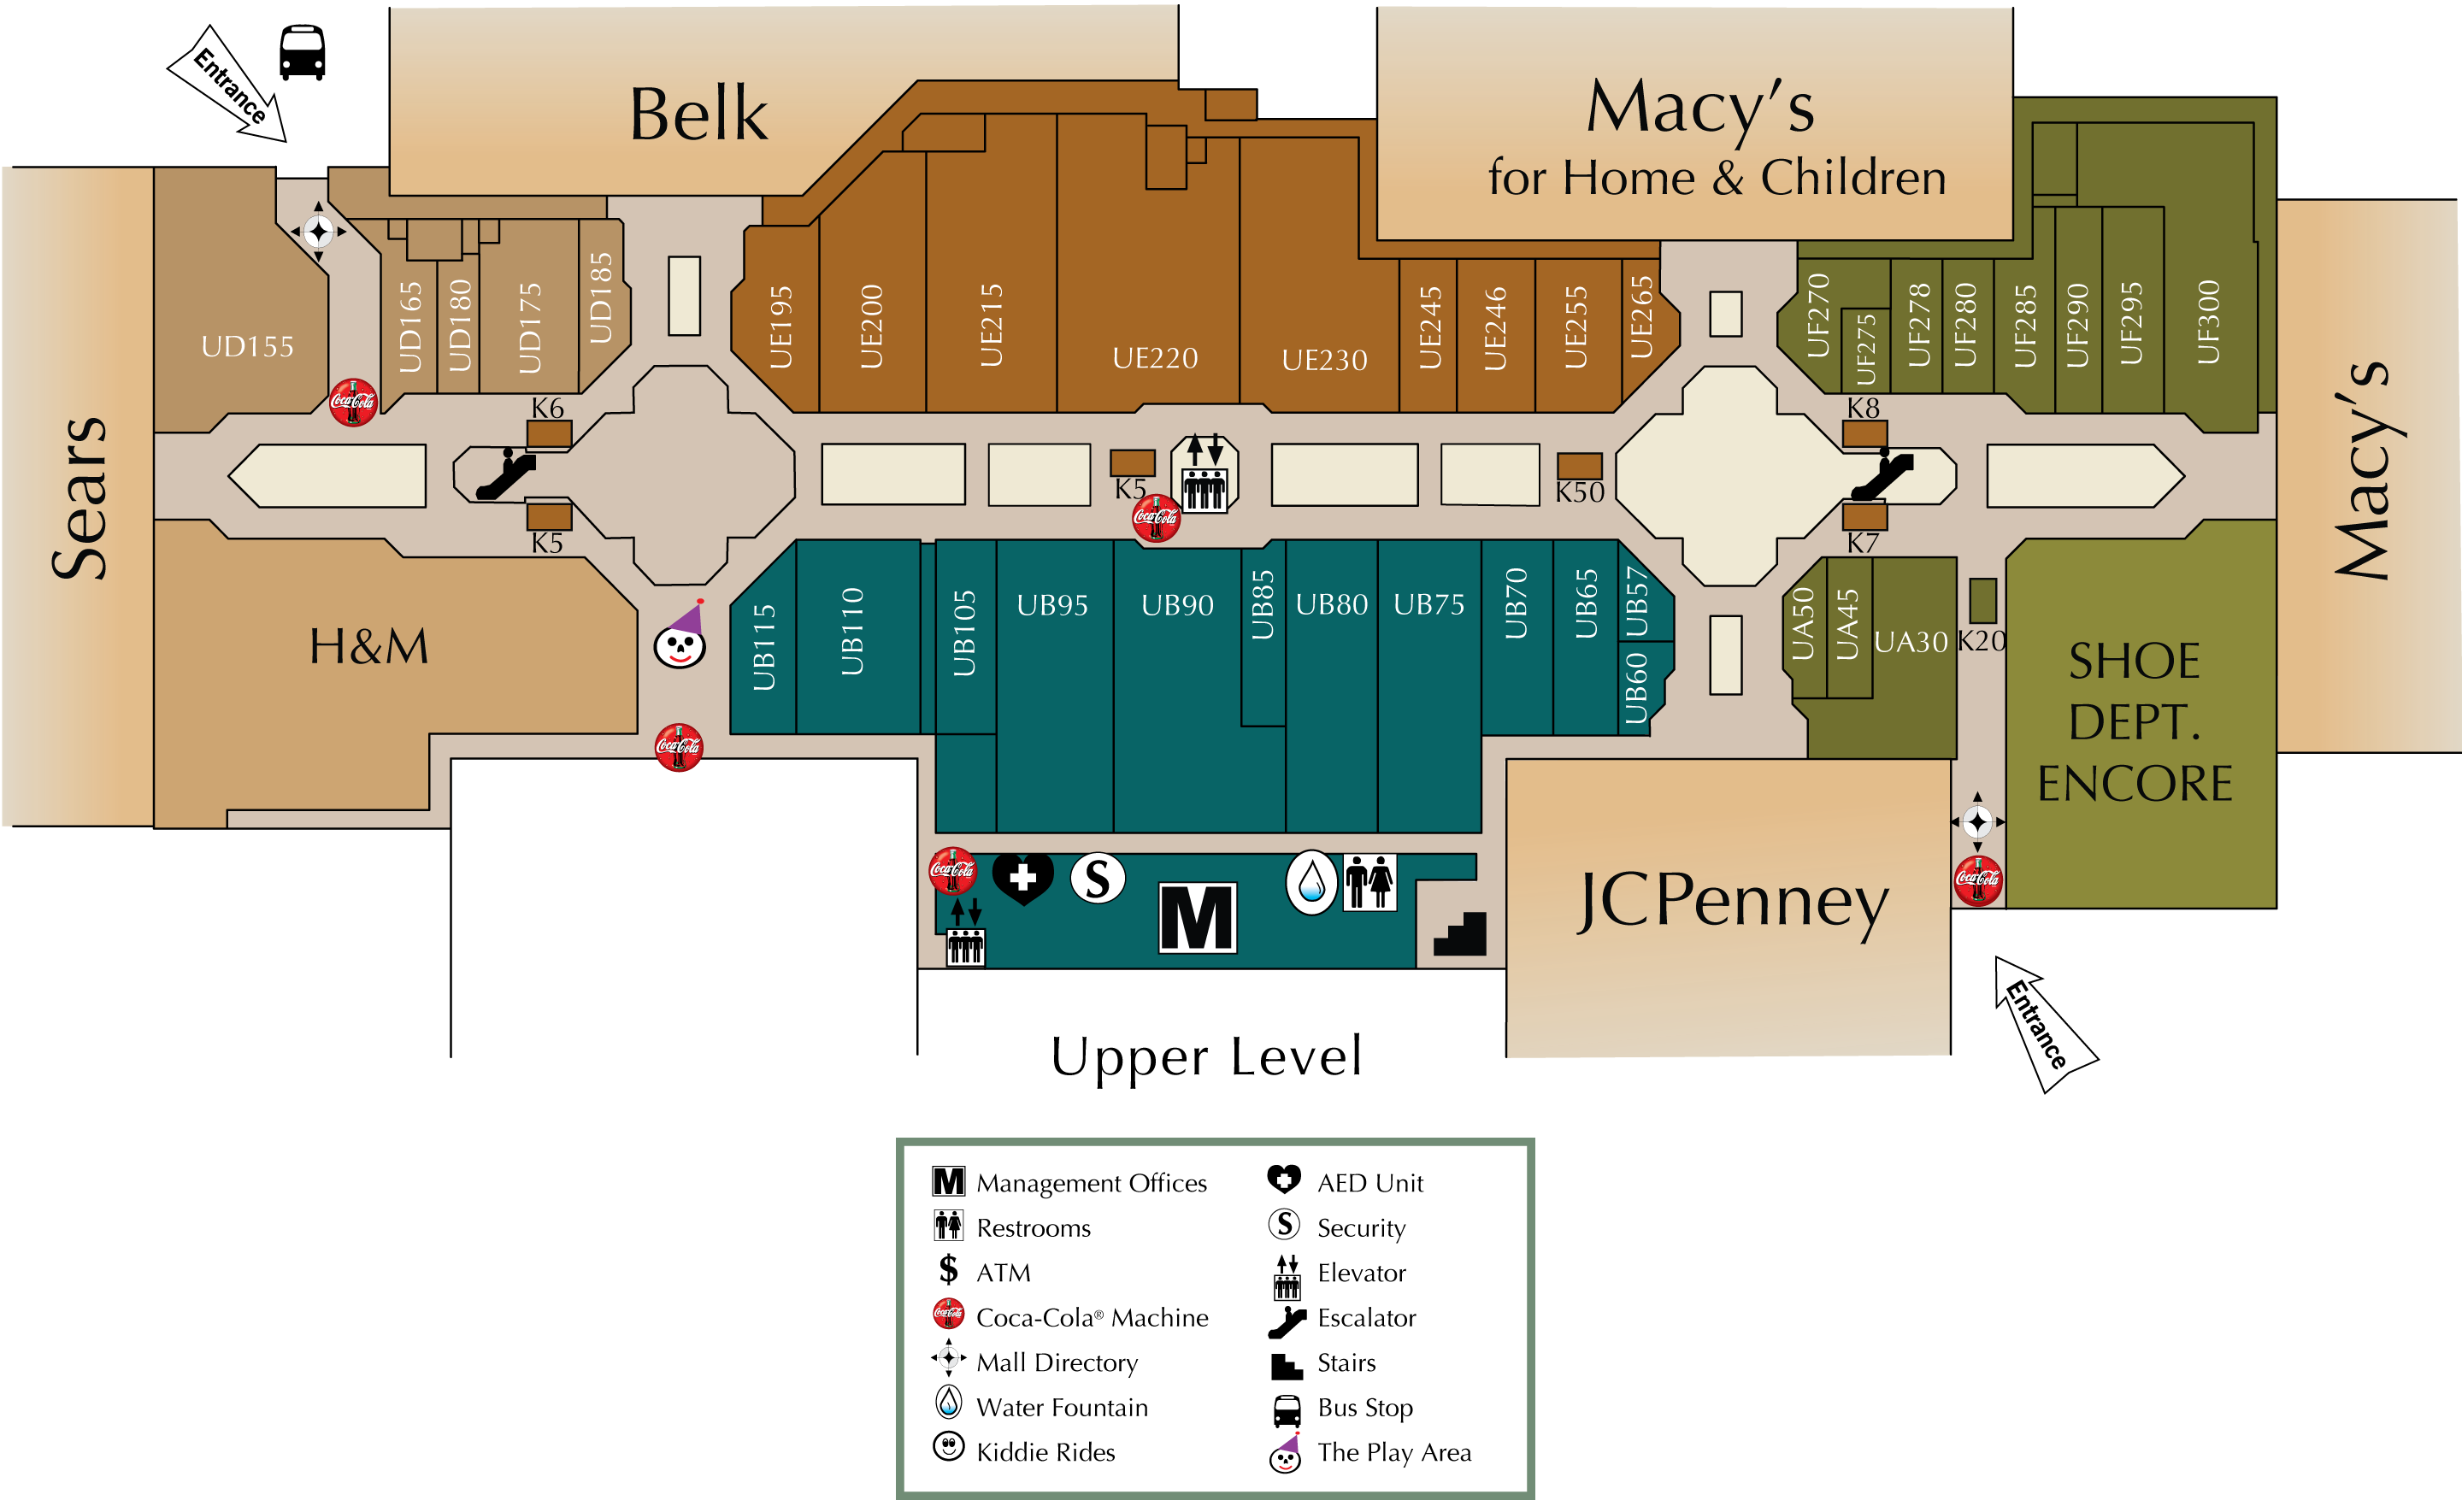 Mall Directory | Valley View Mall